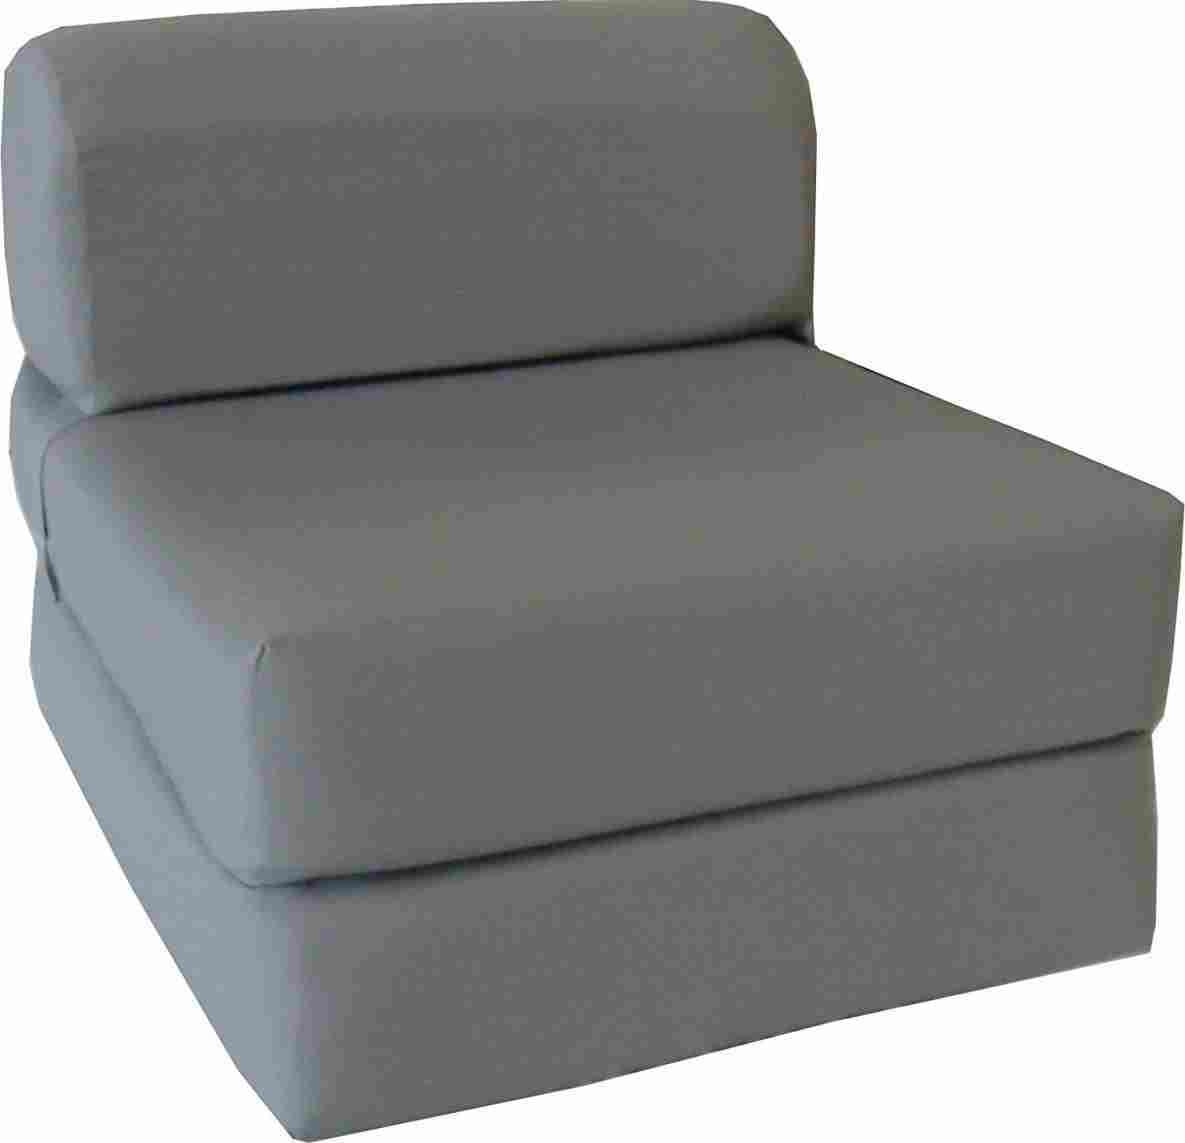 Fold Up Sofa Bed | Sofa And Chair Information Intended For Fold Up Sofa Chairs (View 7 of 22)